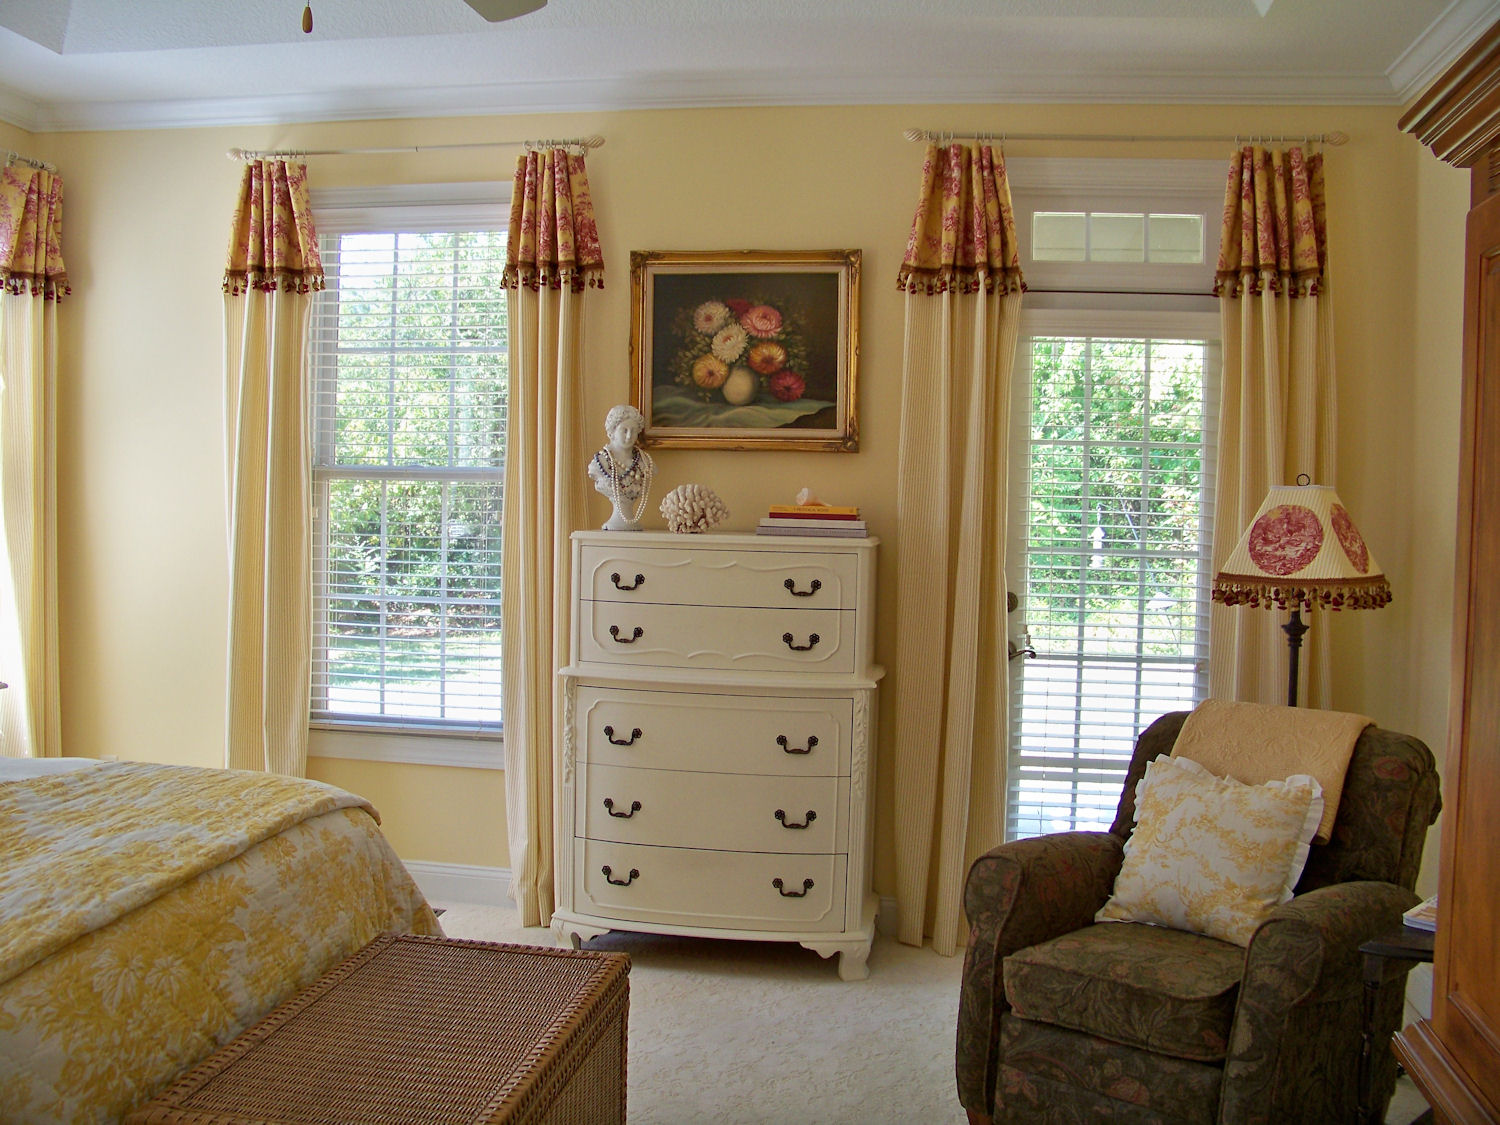 The comforts of home master bedroom curtain reveal for Curtains and drapes for bedroom ideas